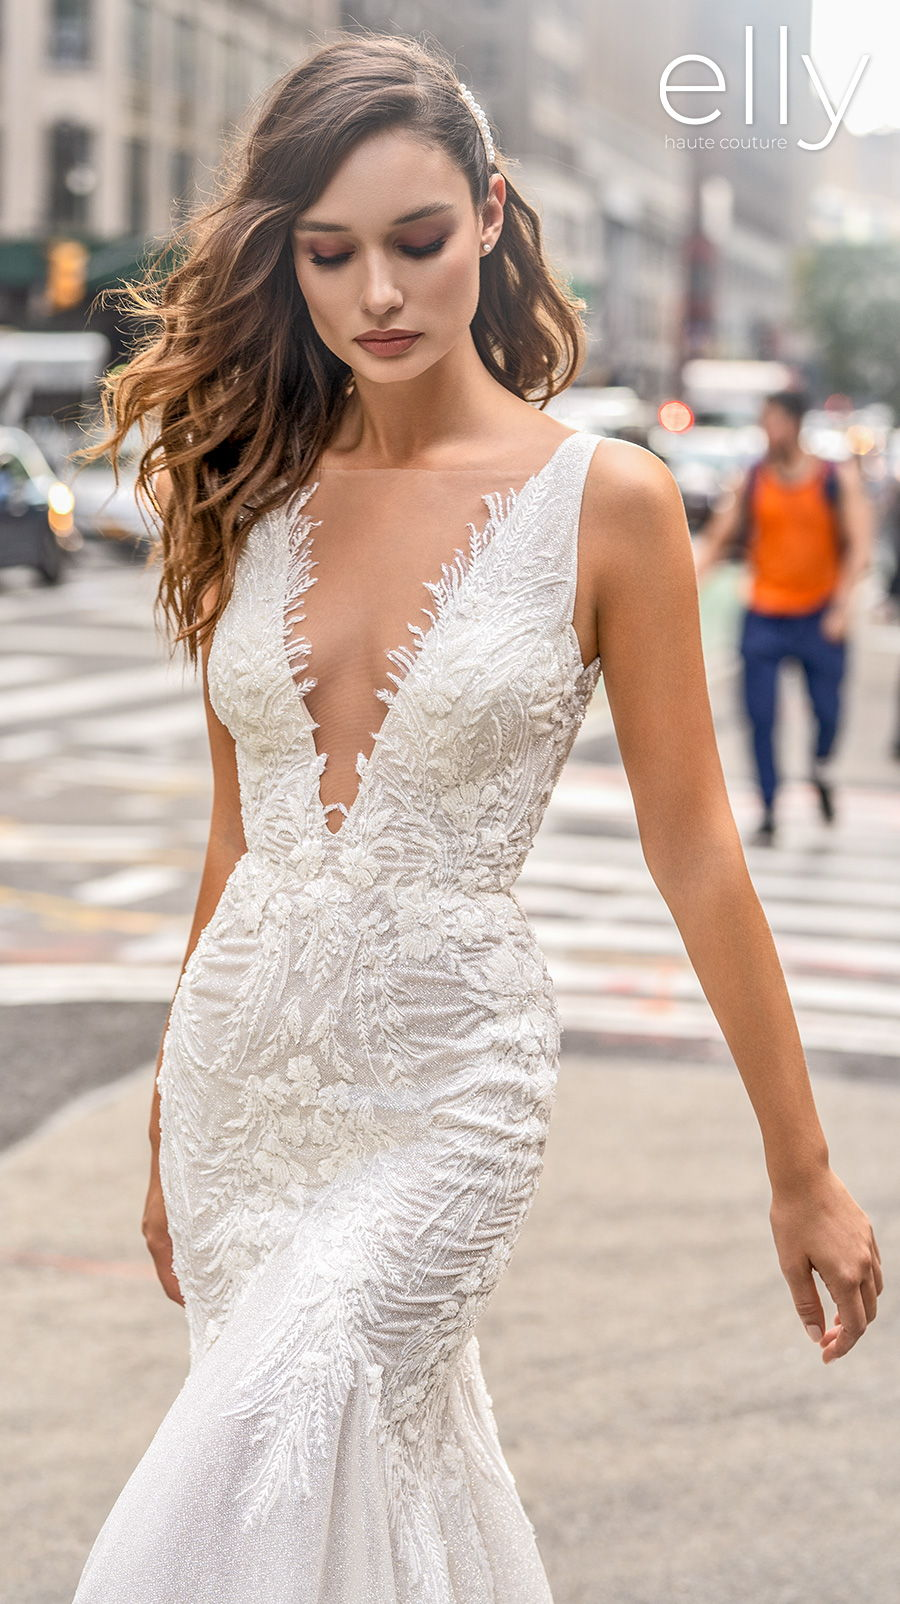 elly bride 2020 nyc bridal sleeveless deep v neck heavily embellished bodice romantic fit and flare wedding dress scoop back chapel train (chris) zv